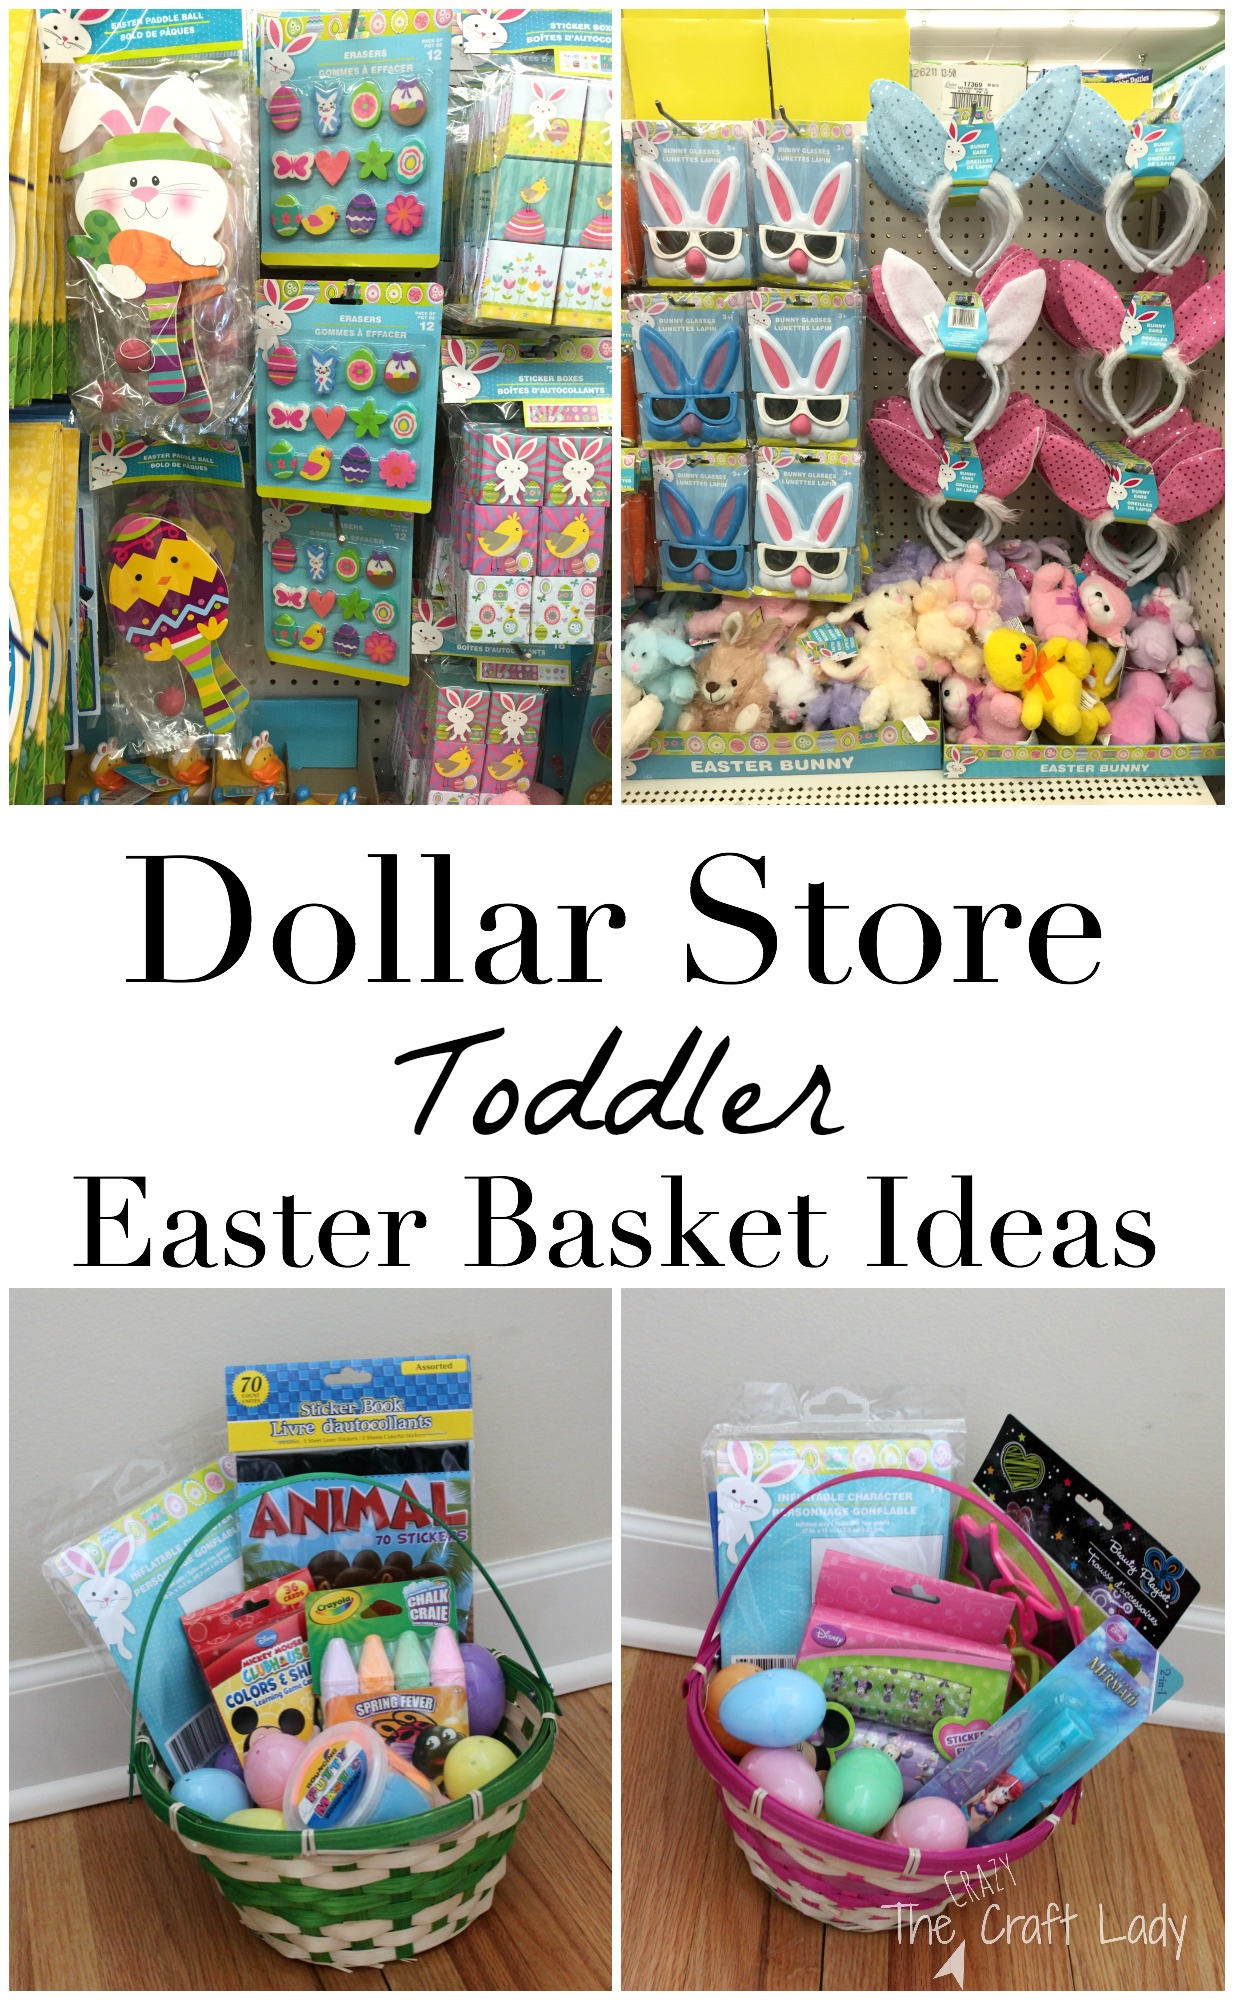 Toddler approved dollar store easter basket ideas the crazy craft lady toddler approved dollar store easter basket ideas negle Choice Image